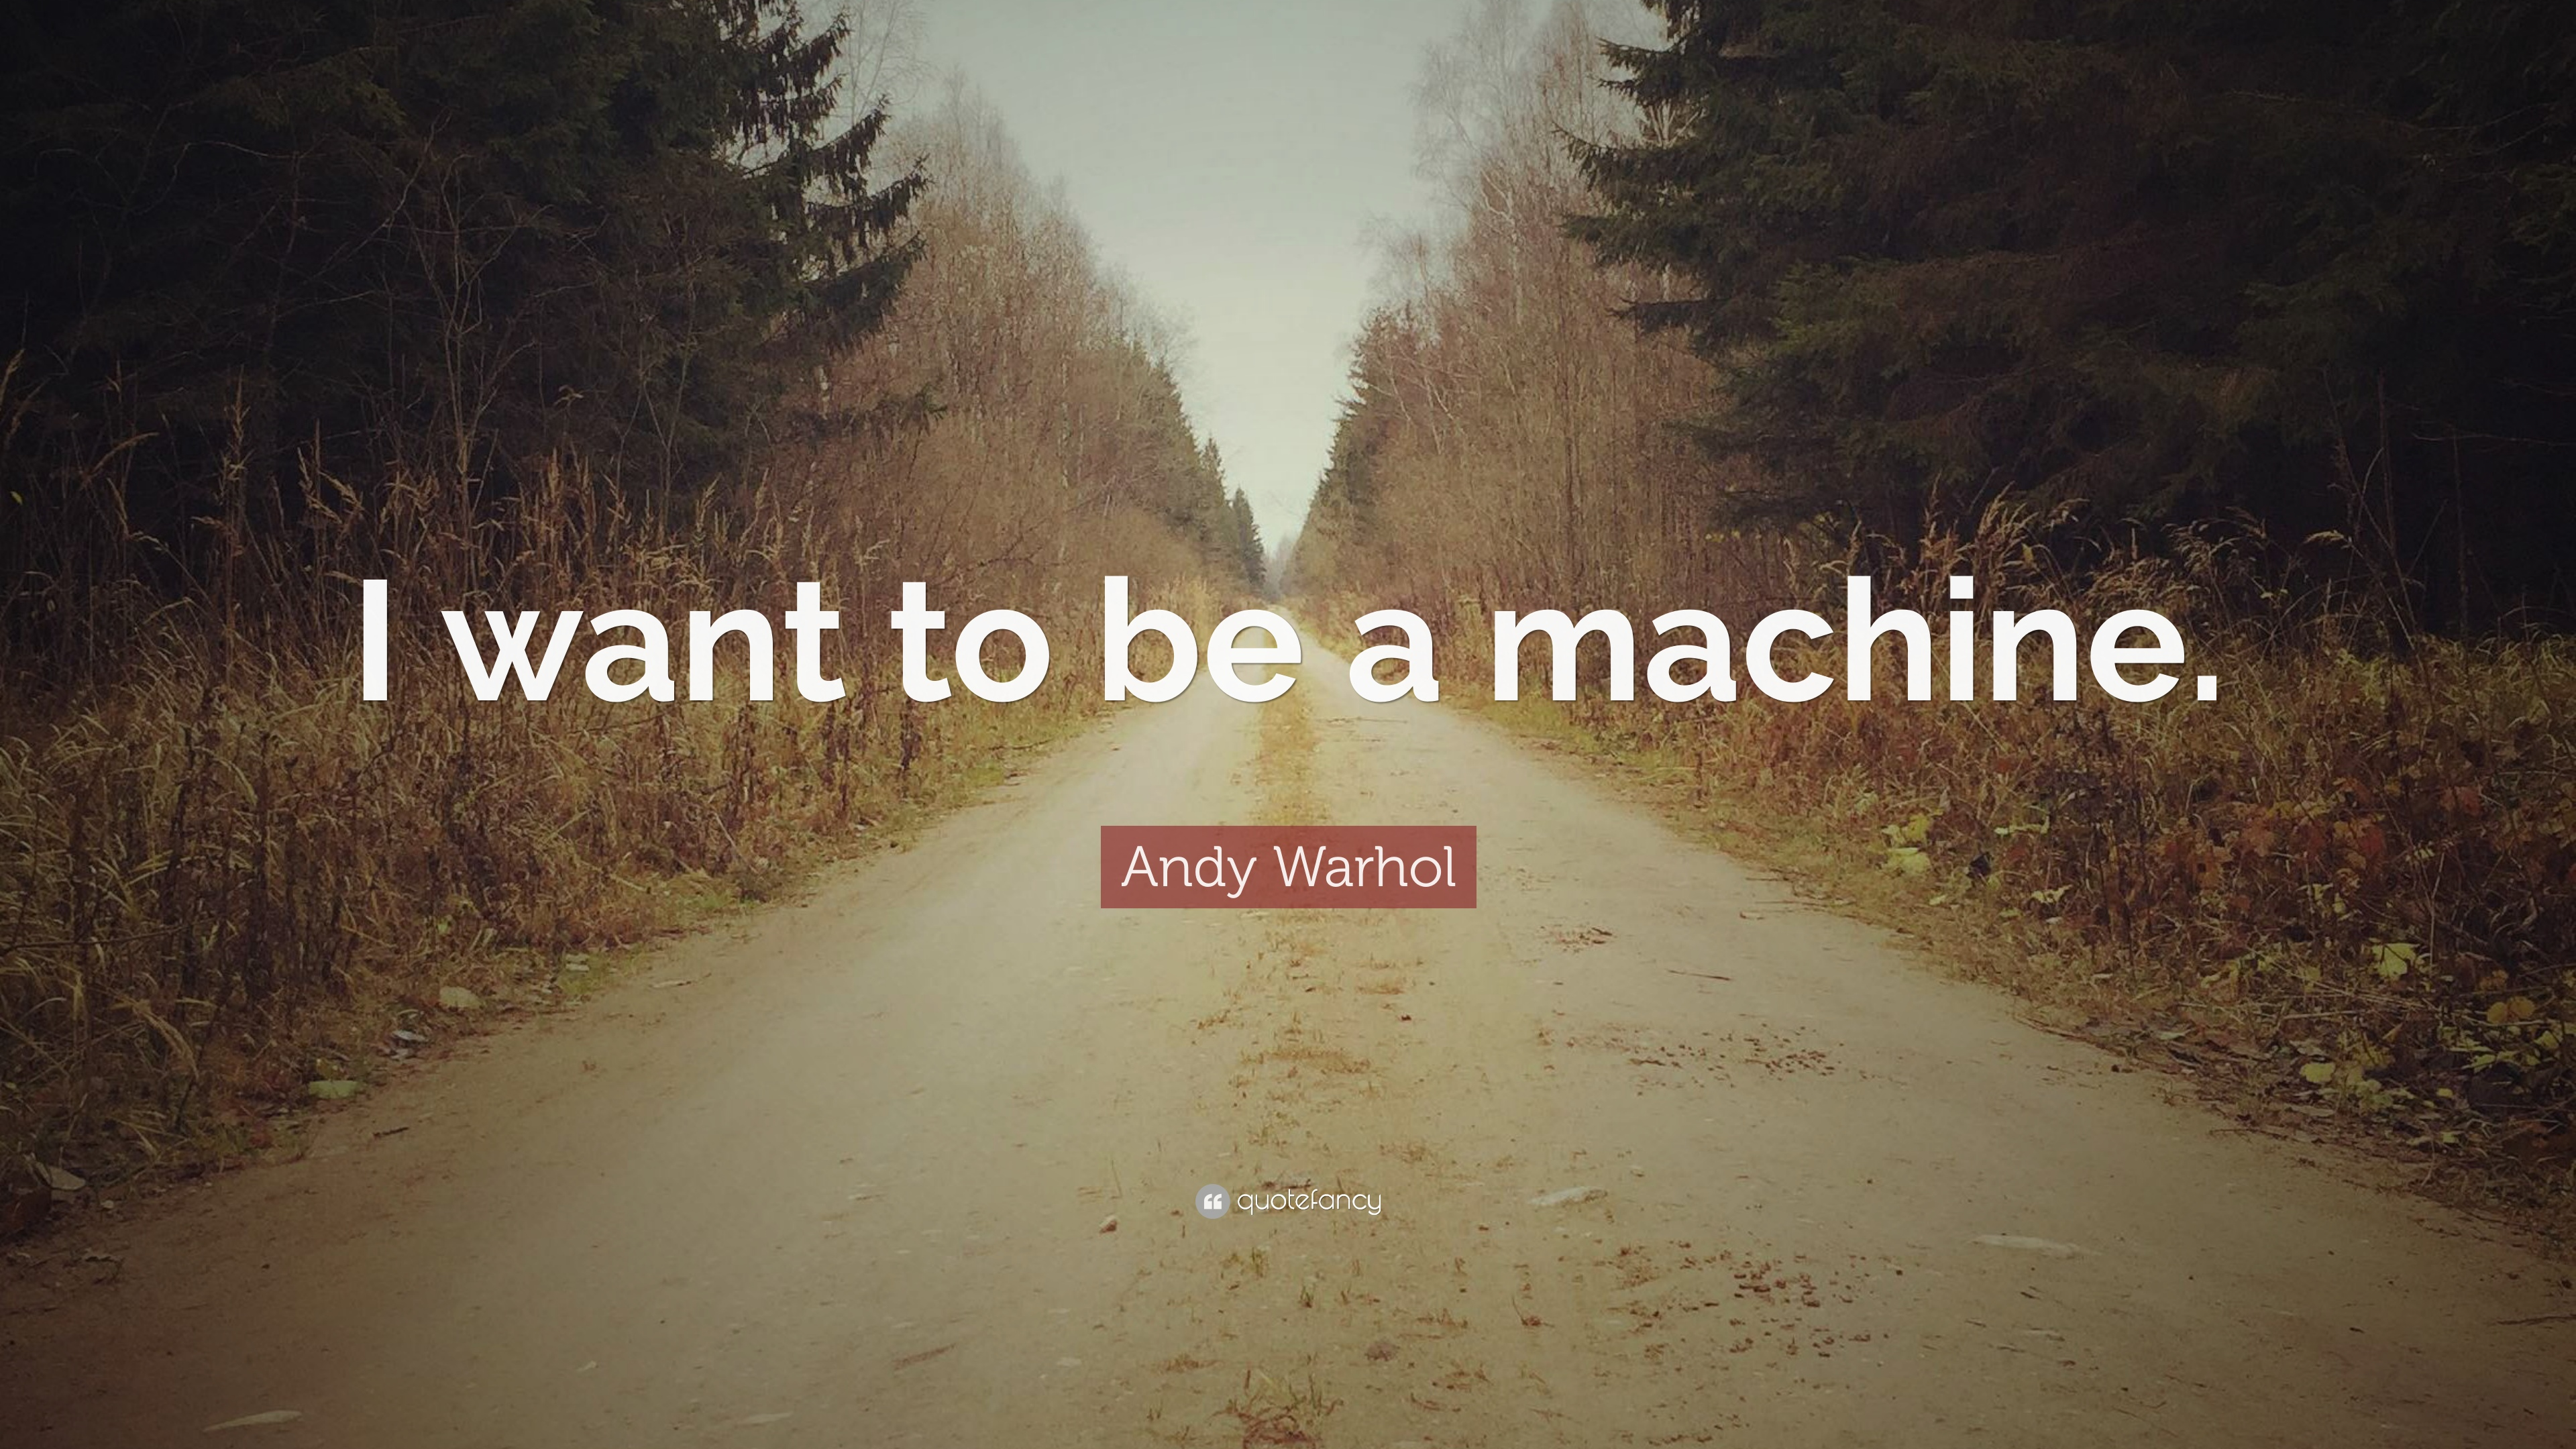 Andy Warhol Wallpaper Quotes